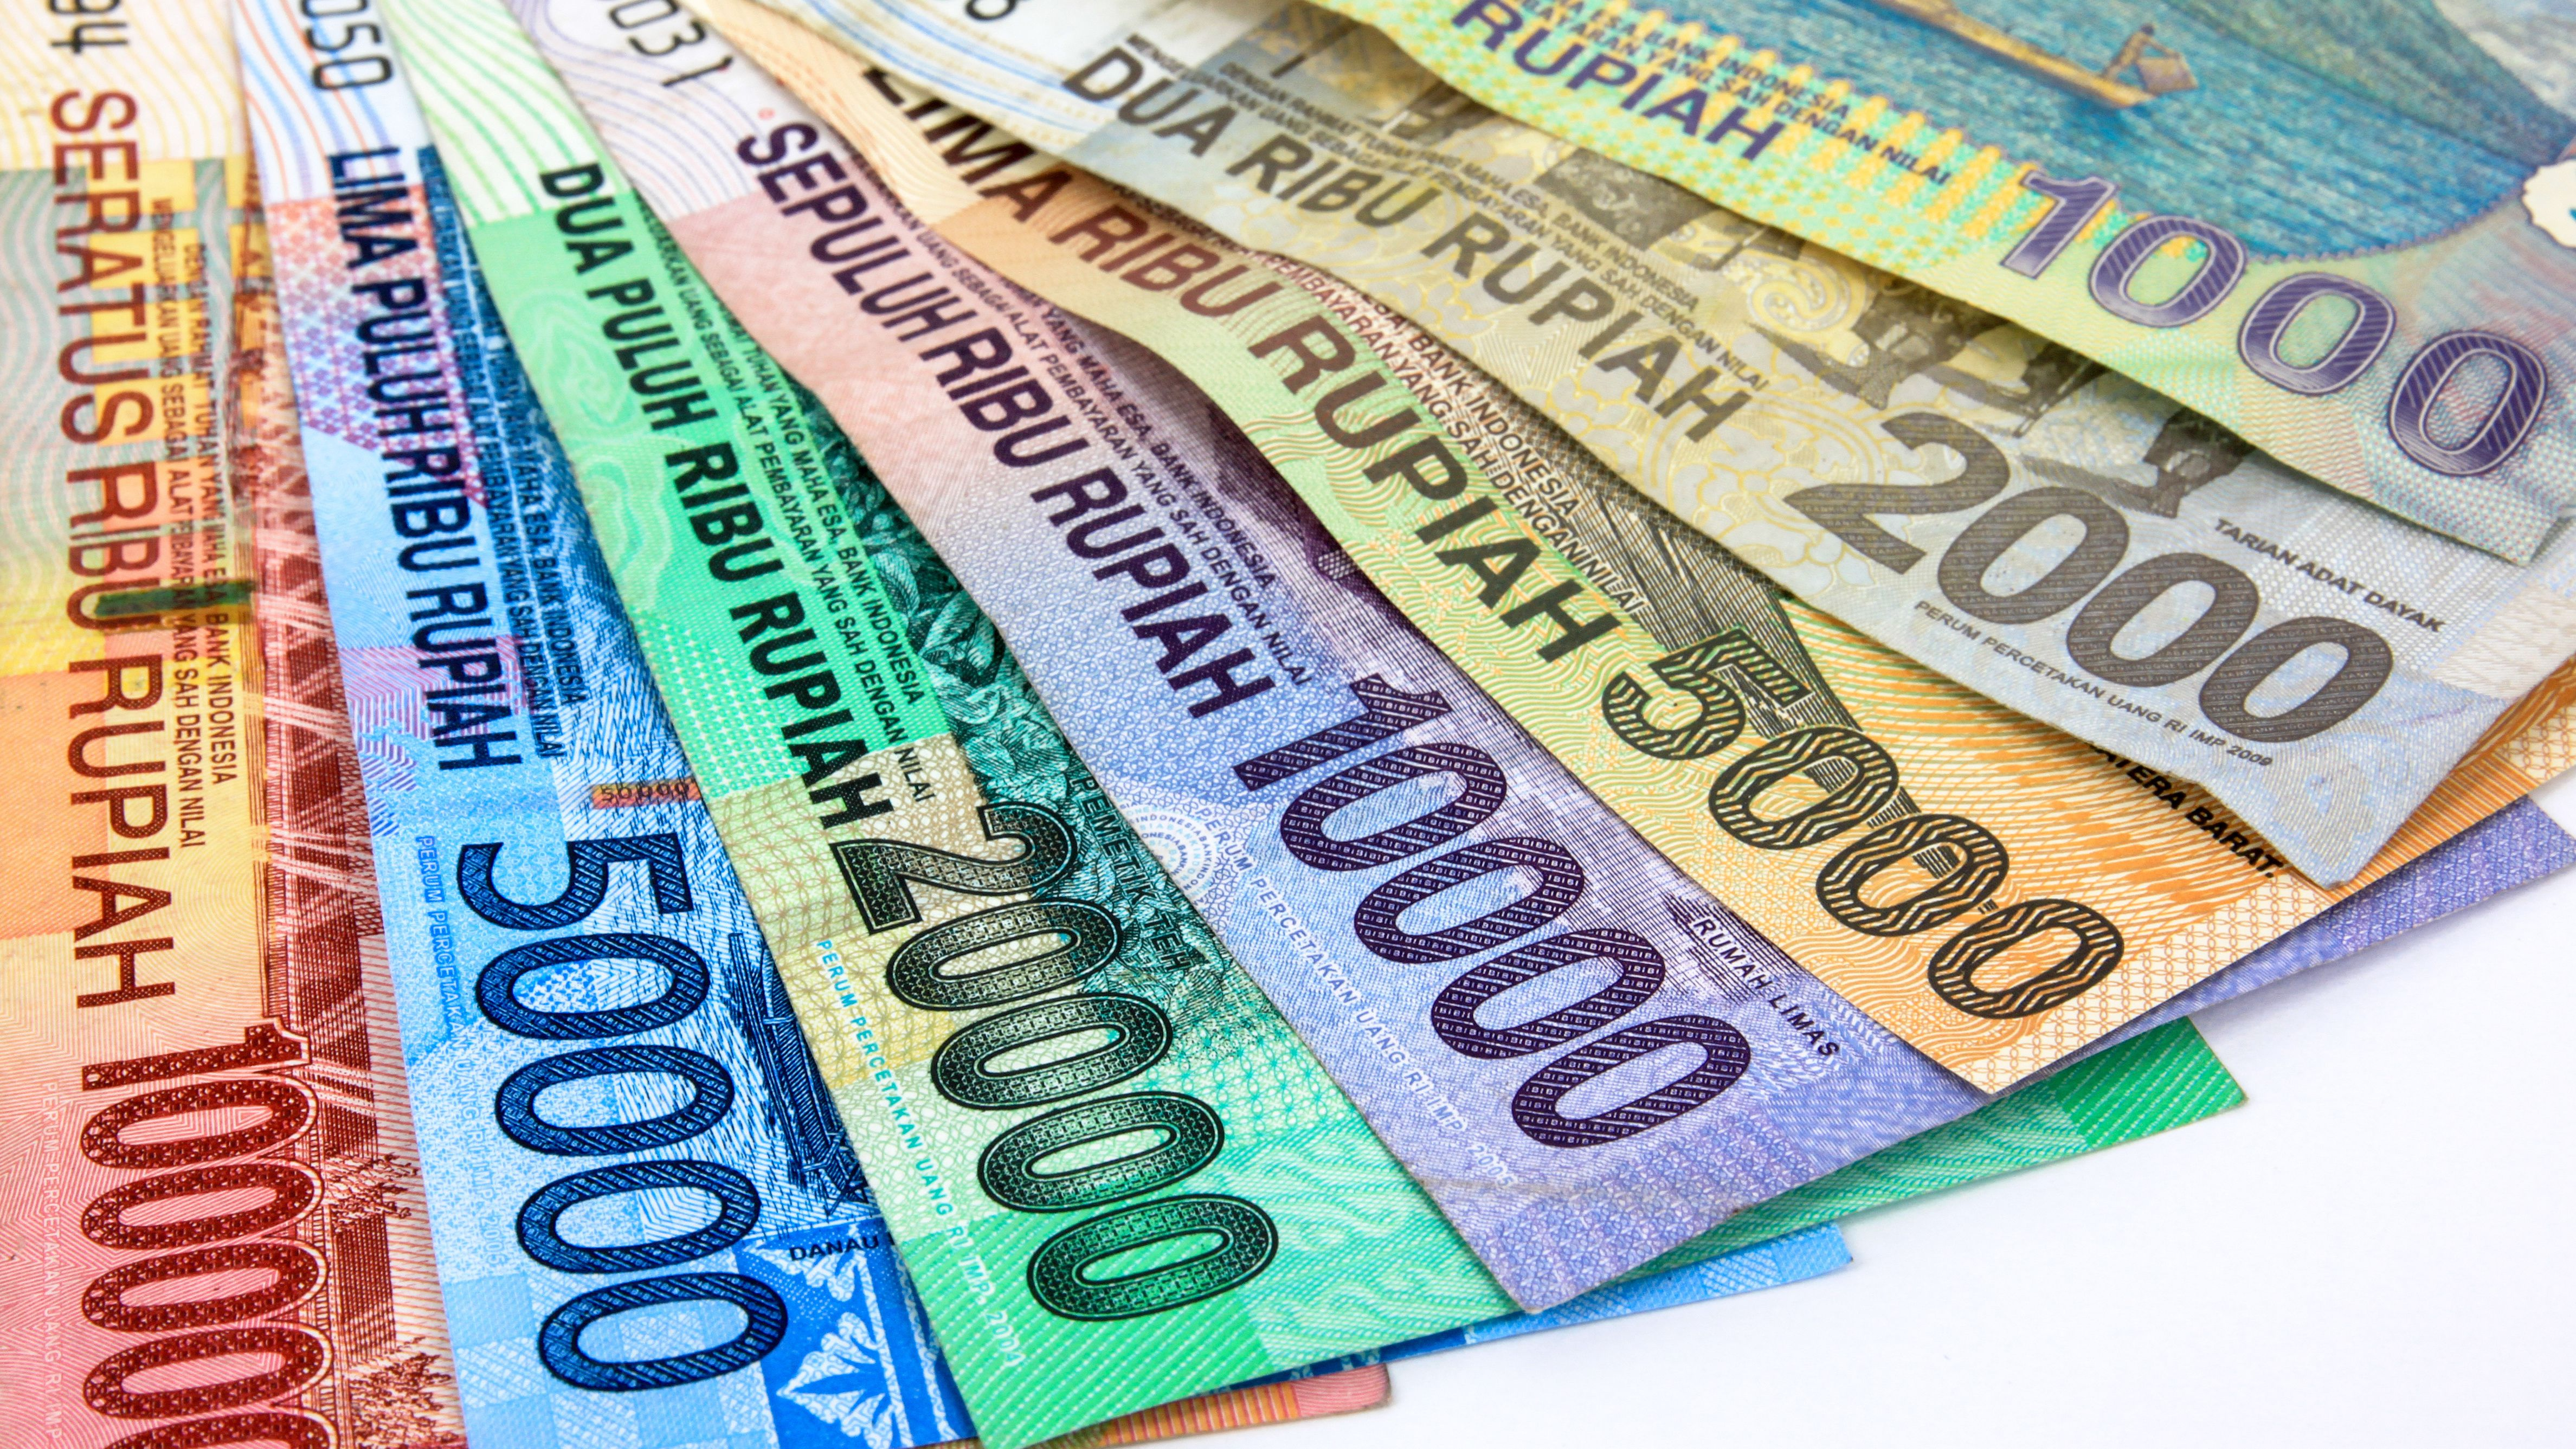 Learn These 1 Million Indonesian Rupees In Euro {Swypeout}